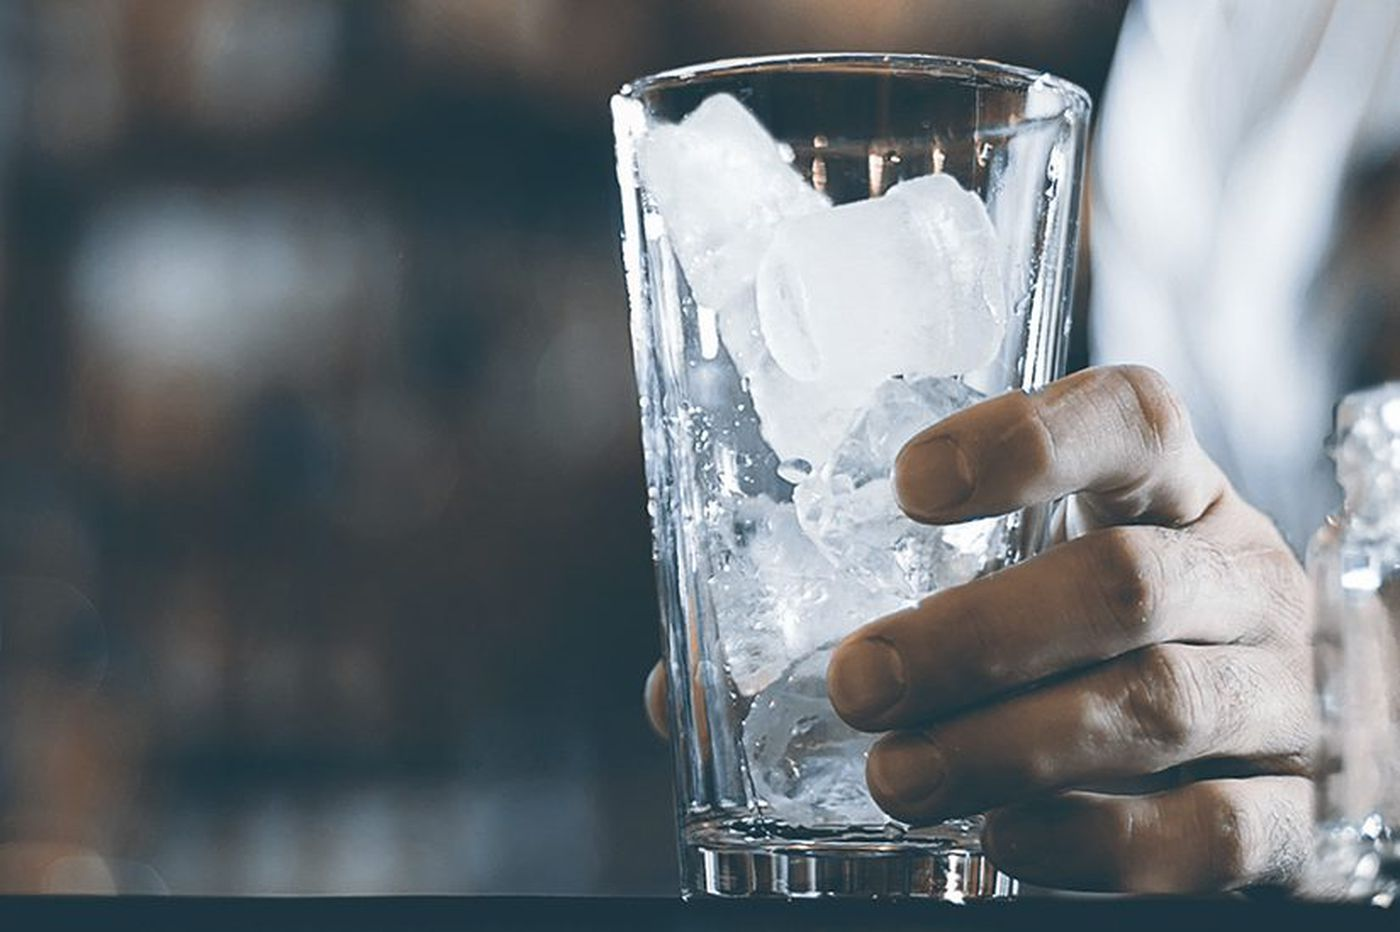 Bacteria in ice cubes: a risk on the holidays?